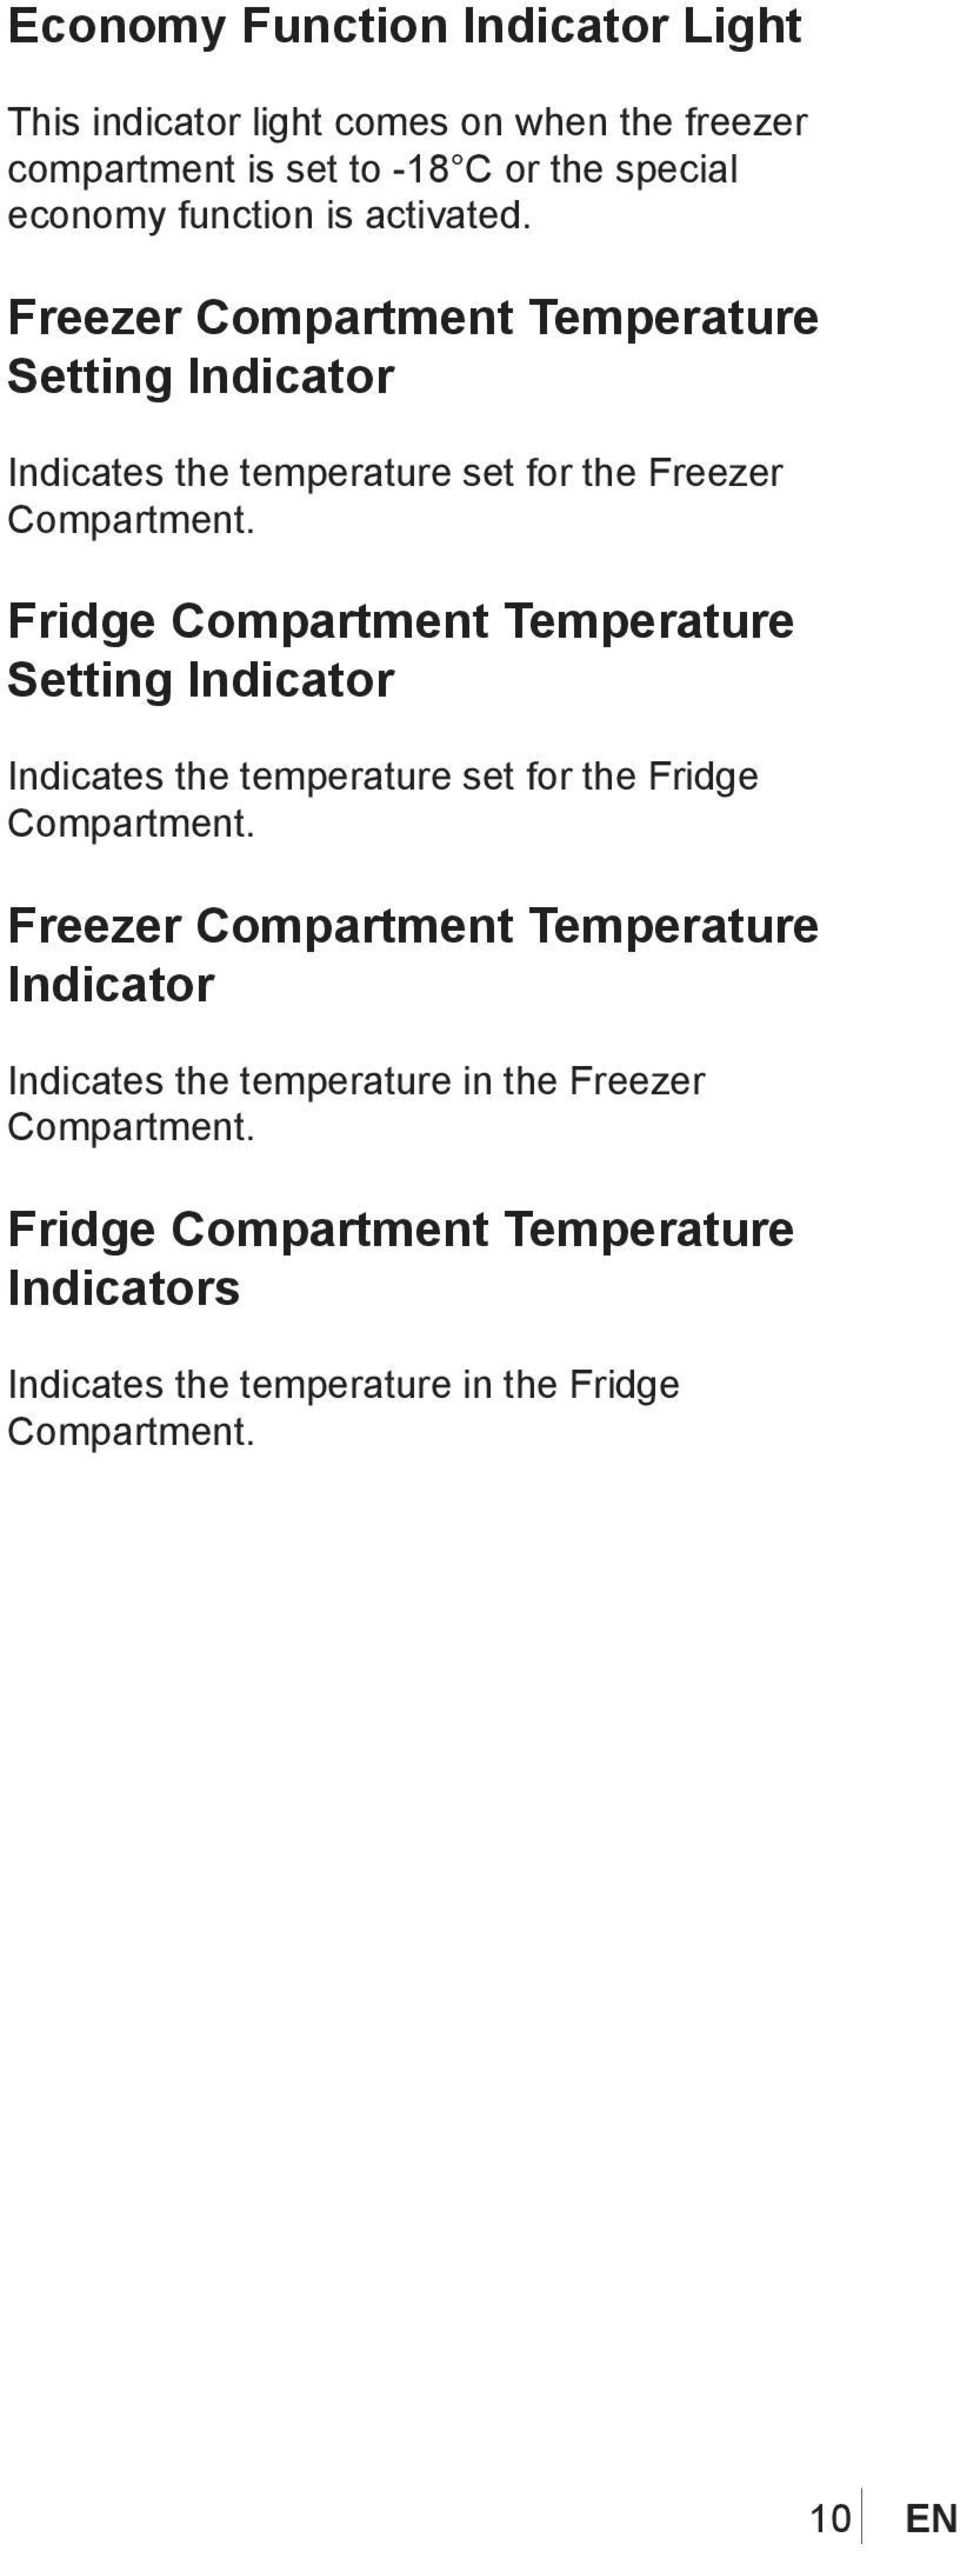 Fridge Compartment Temperature Setting Indicator Indicates the temperature set for the Fridge Compartment.